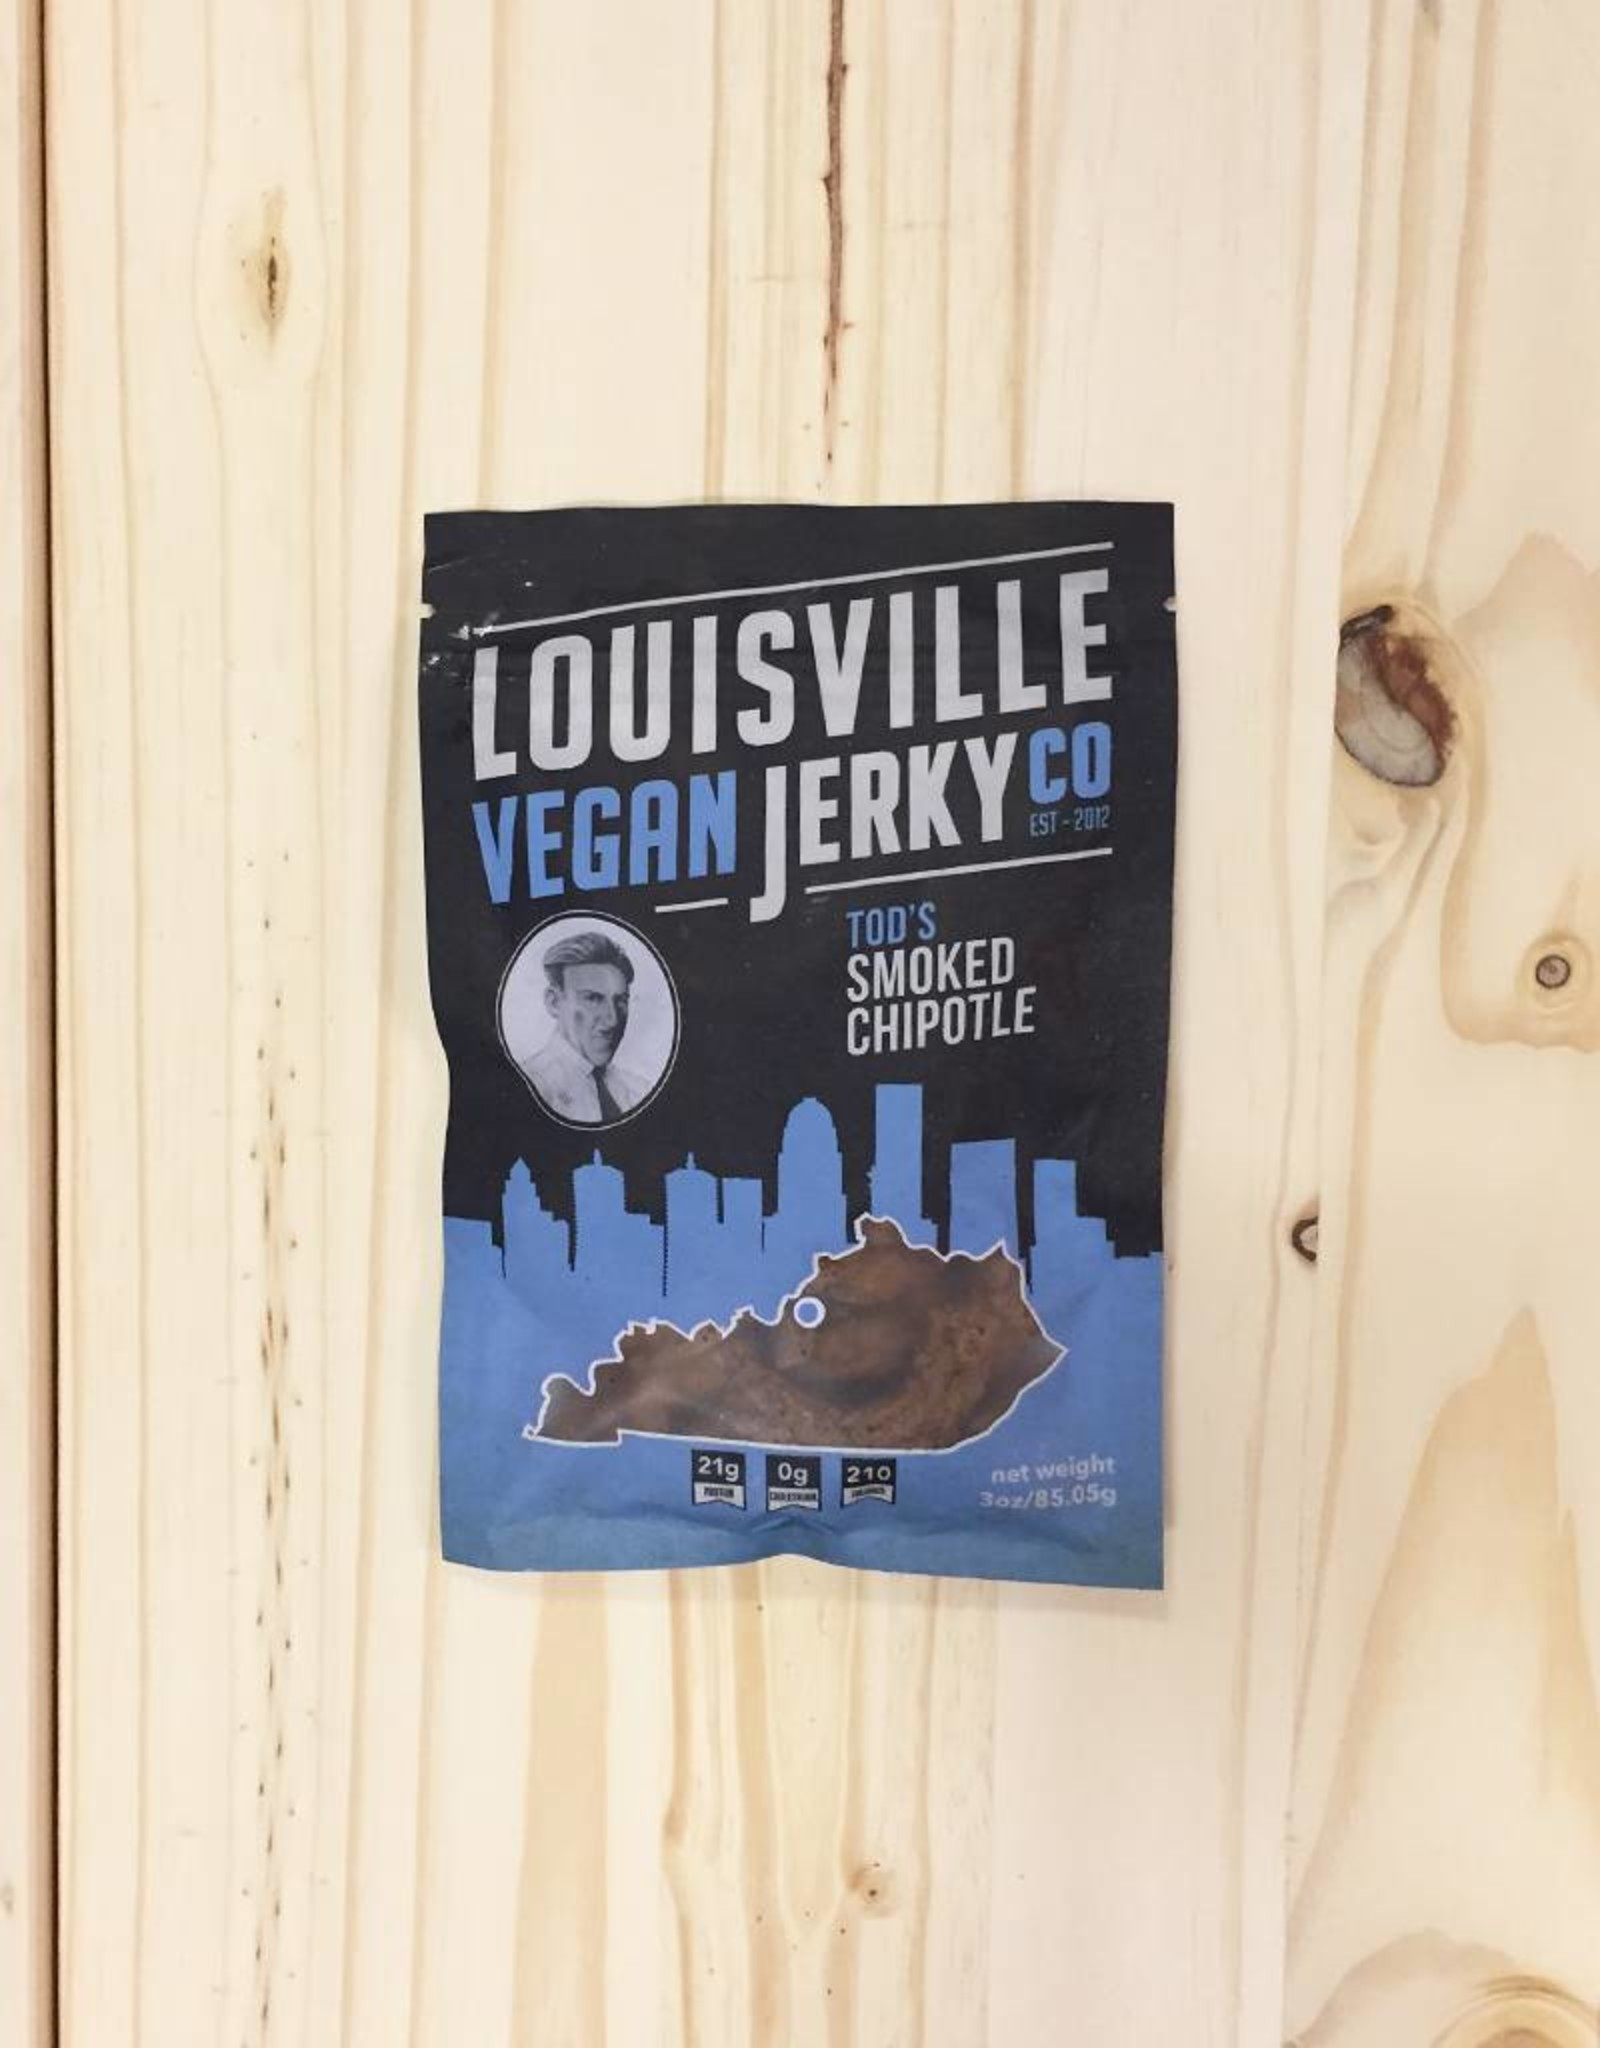 Louisville Vegan Jerky Co. Louisville Vegan Jerky (Smoked Chipotle)